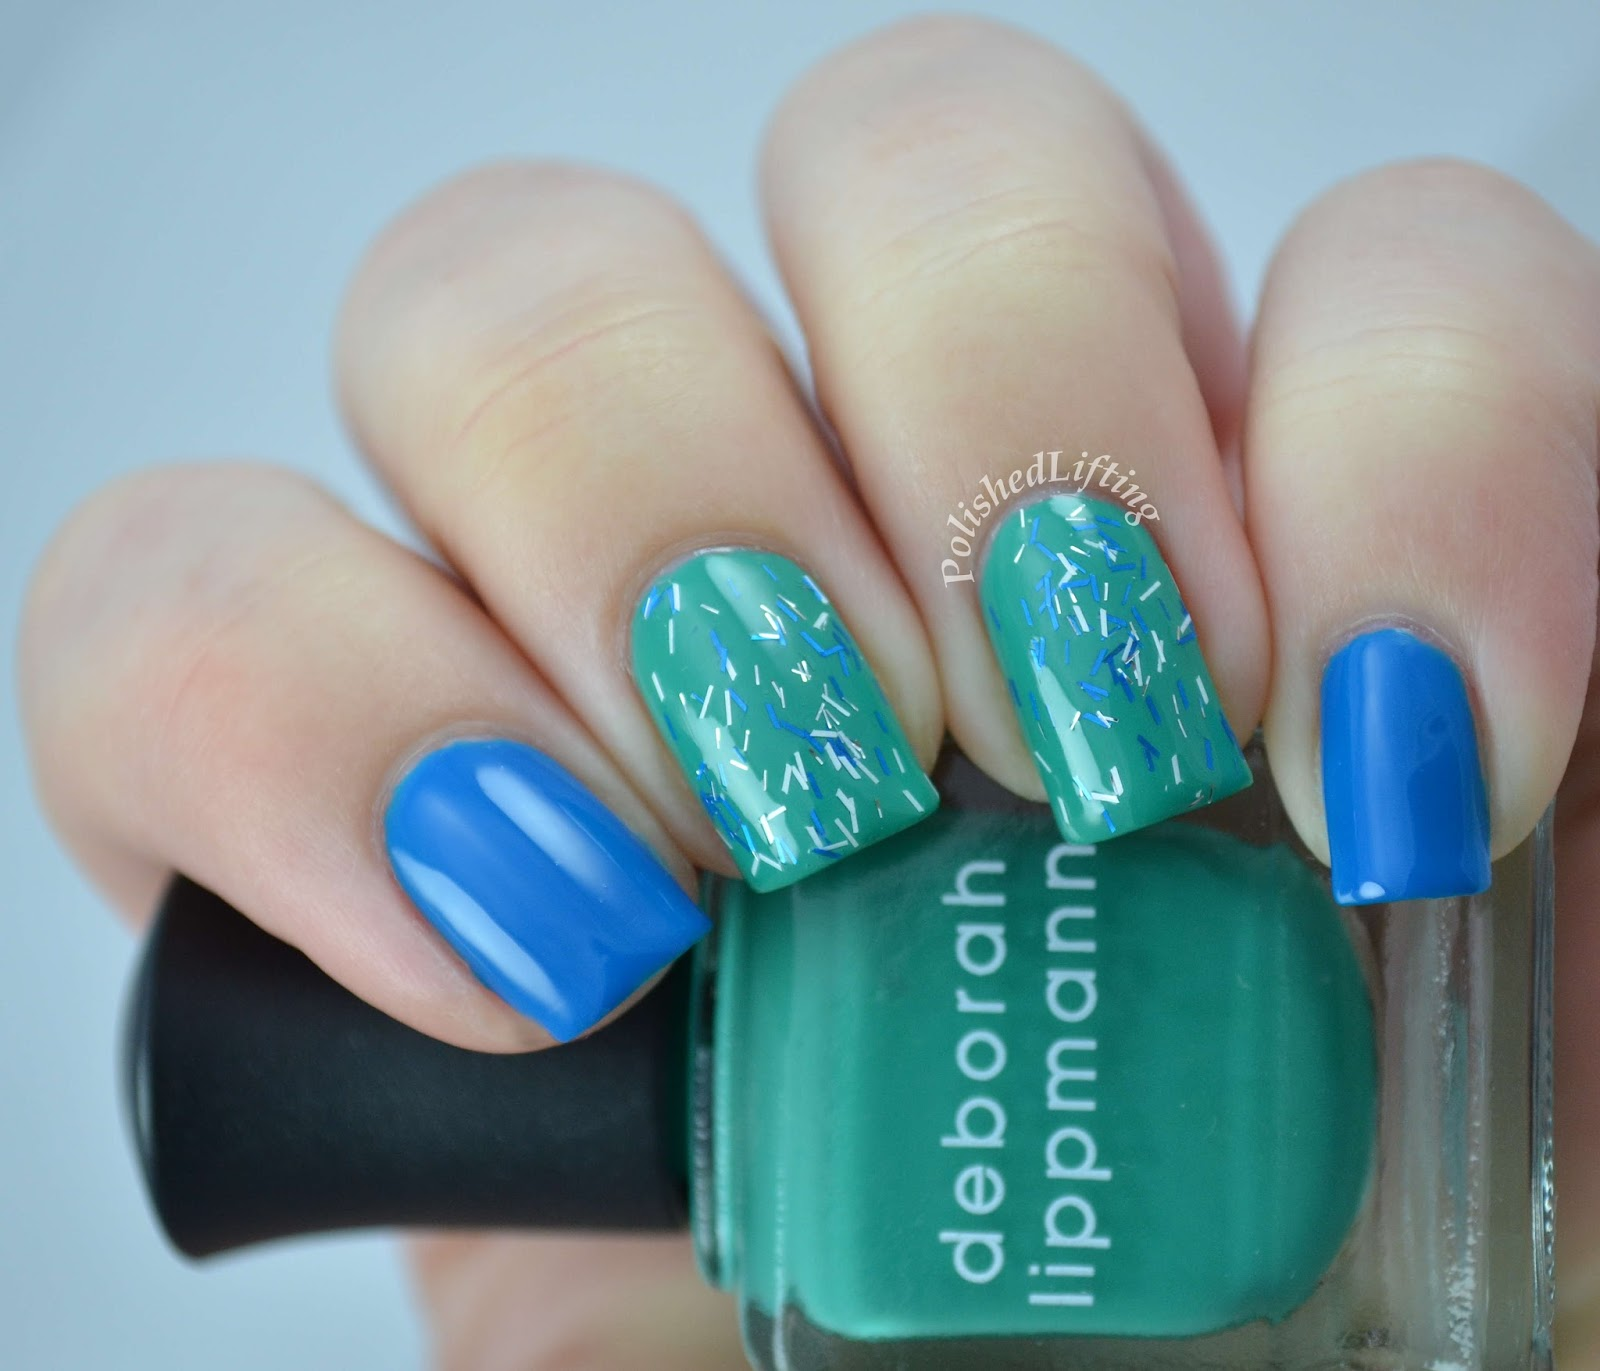 Polished Lifting: Deborah Lippmann She Drives Me Crazy & Video ...